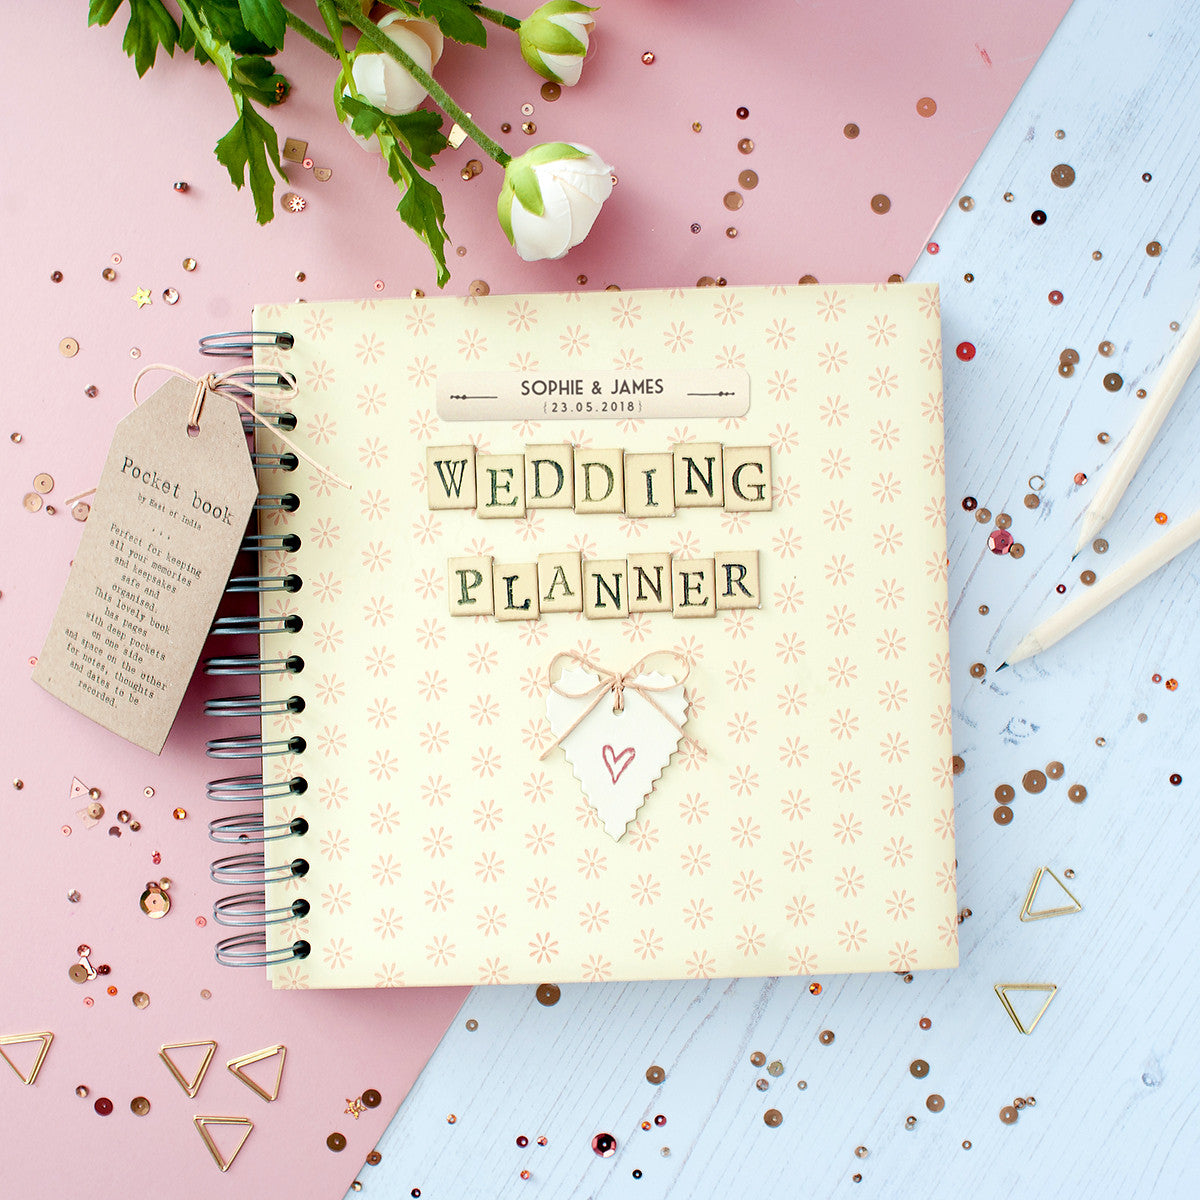 Personalised Retro Wedding Planner Journal In Gift Box   The Little ...